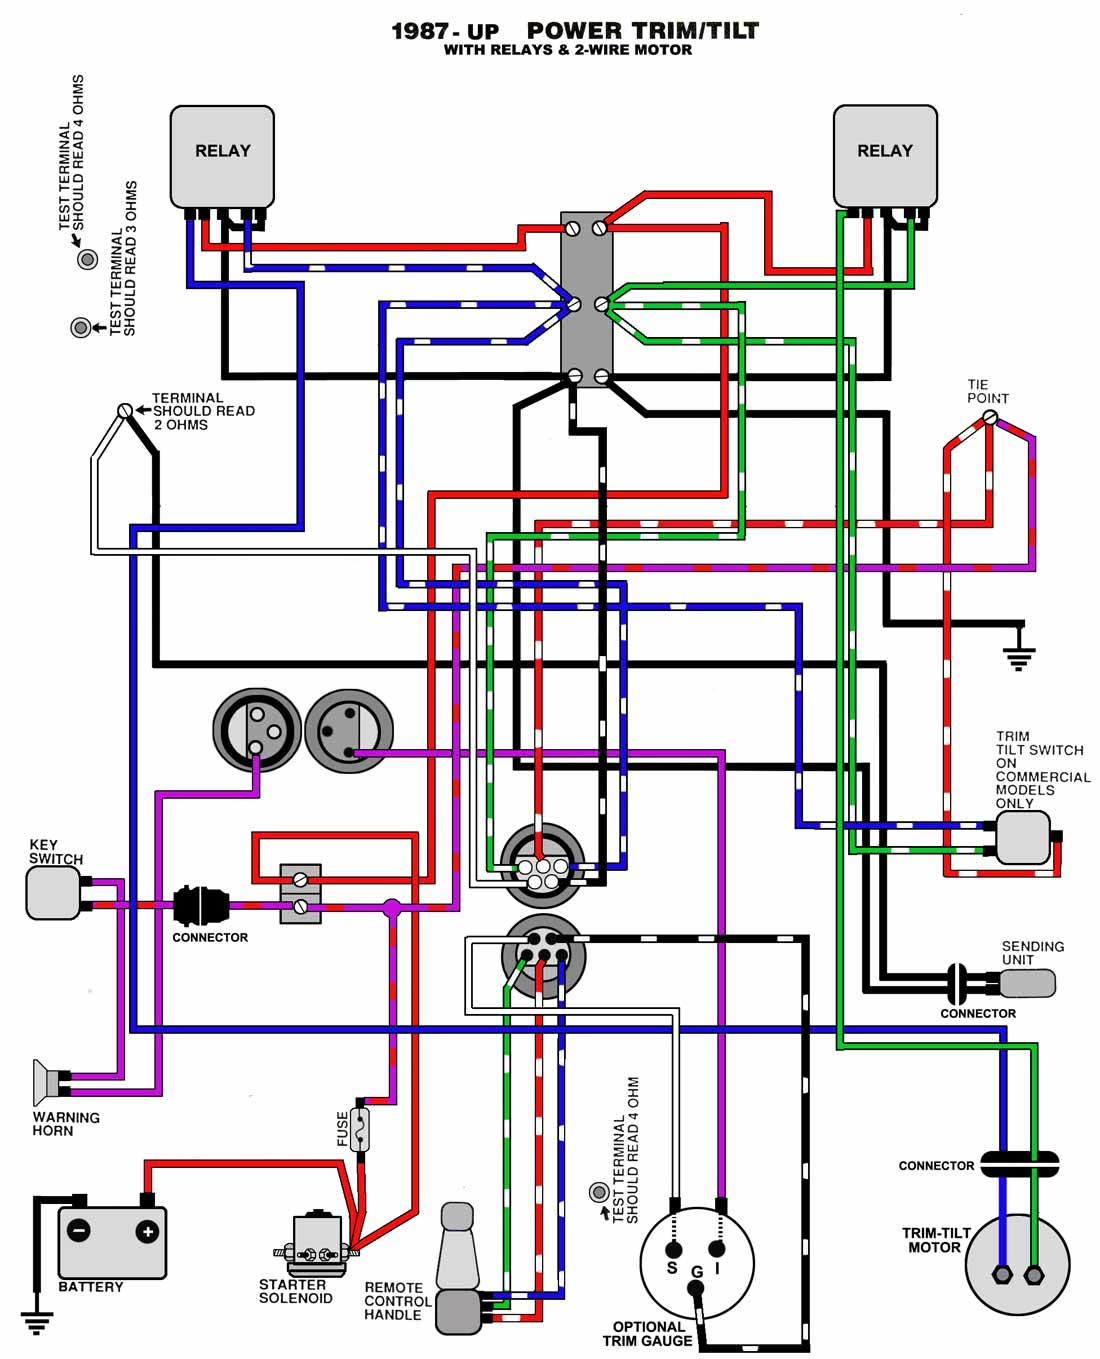 TnT_87_UP mastertech marine evinrude johnson outboard wiring diagrams evinrude key switch wiring diagram at mr168.co